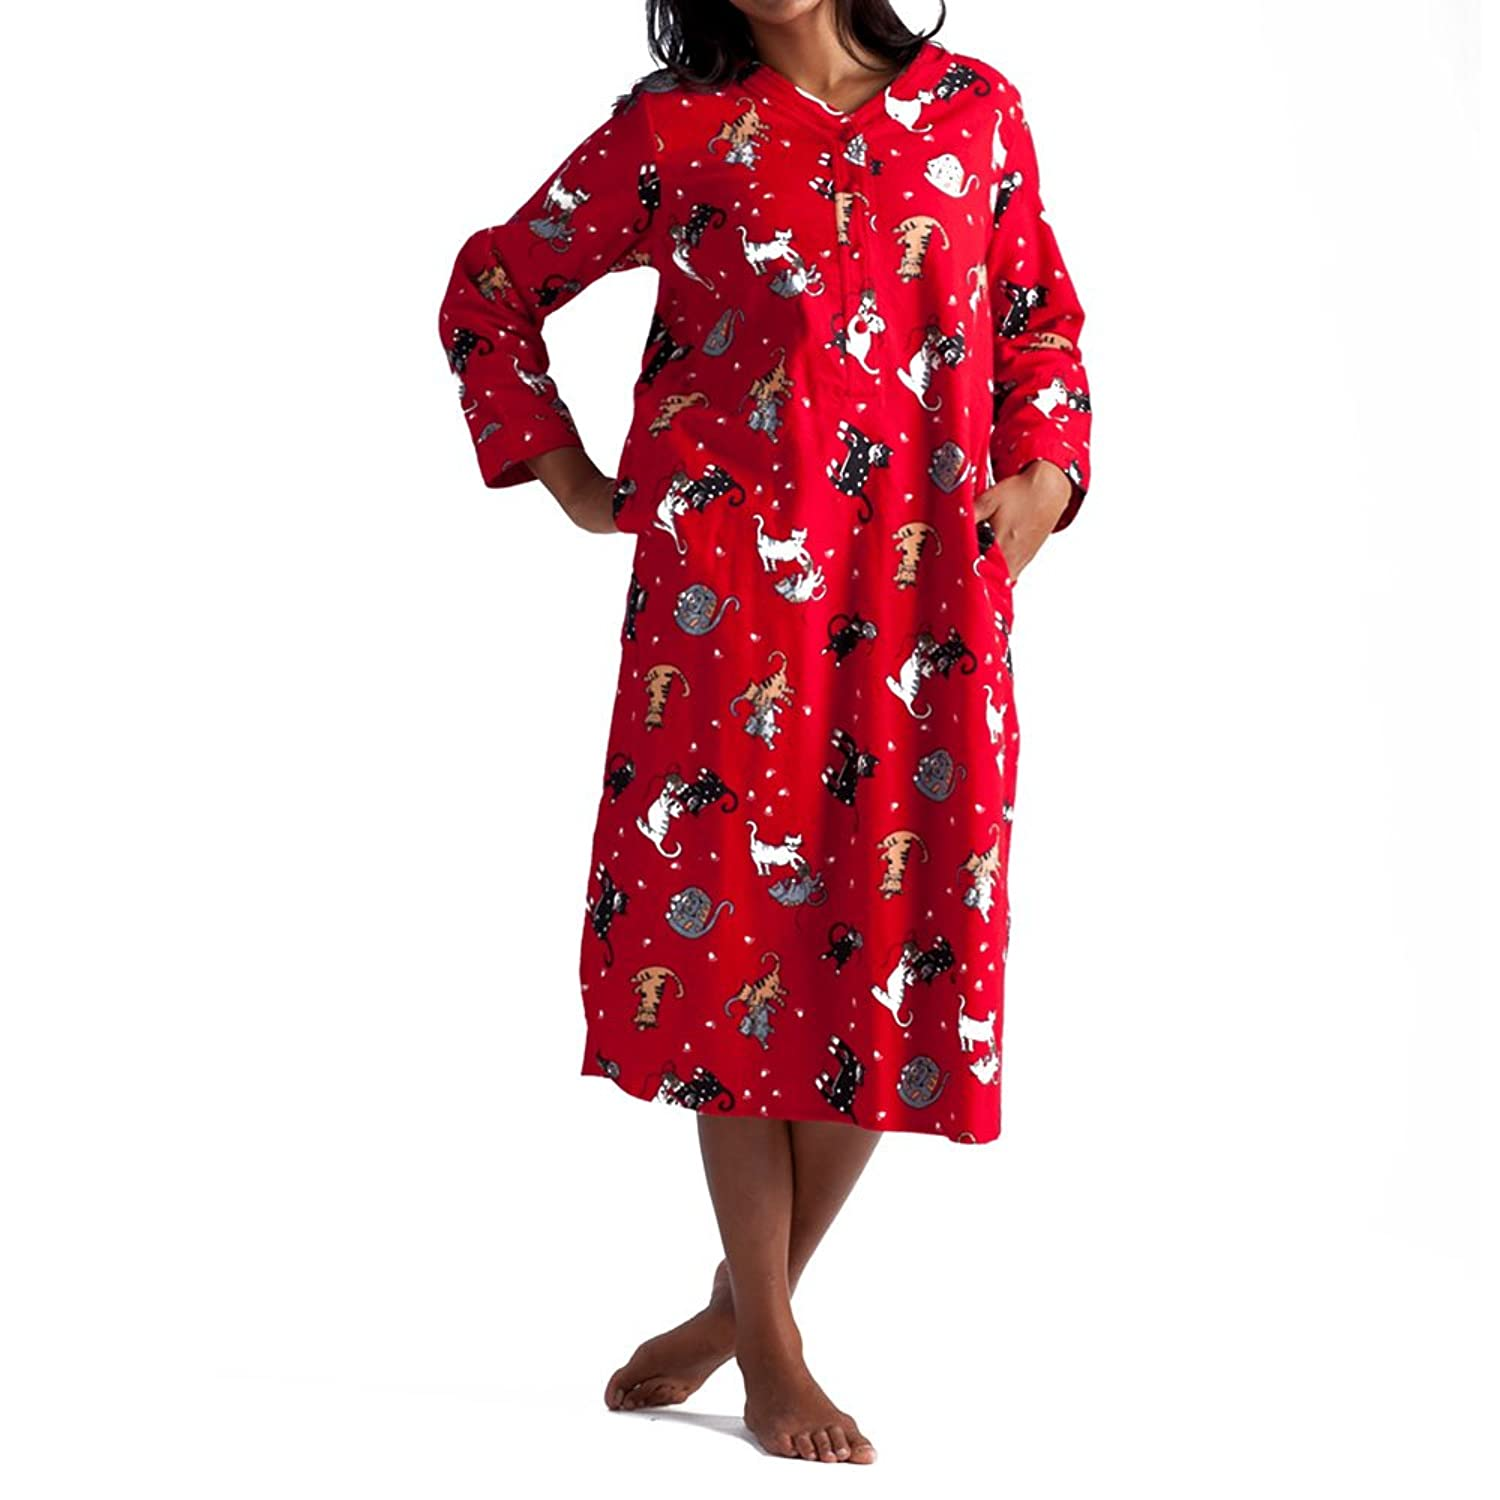 La Cera Women's Plus-Size Flannel Nightshirt